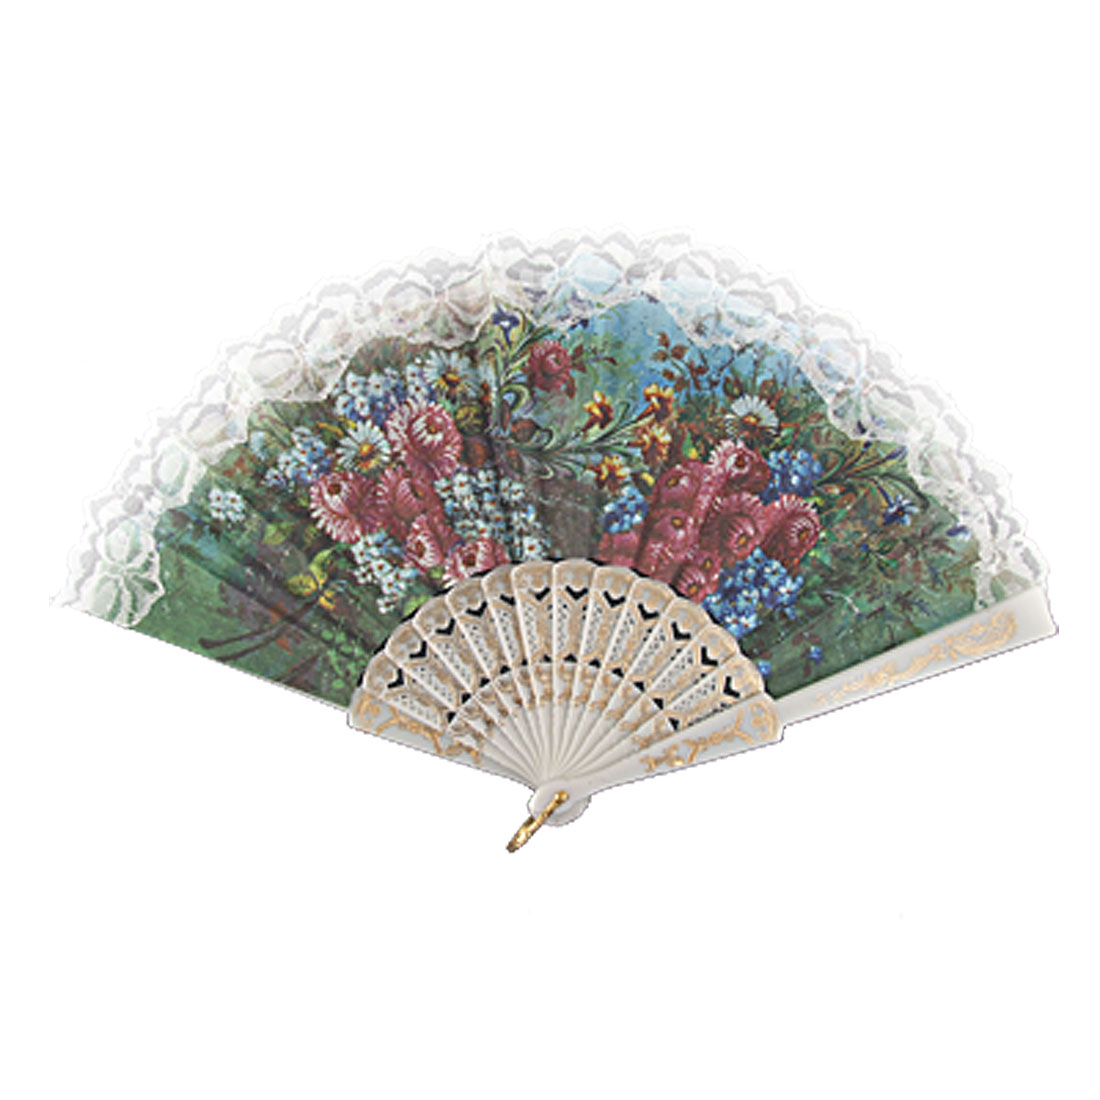 Embossed Frame Lace Applique Floral Handheld Dance Fan